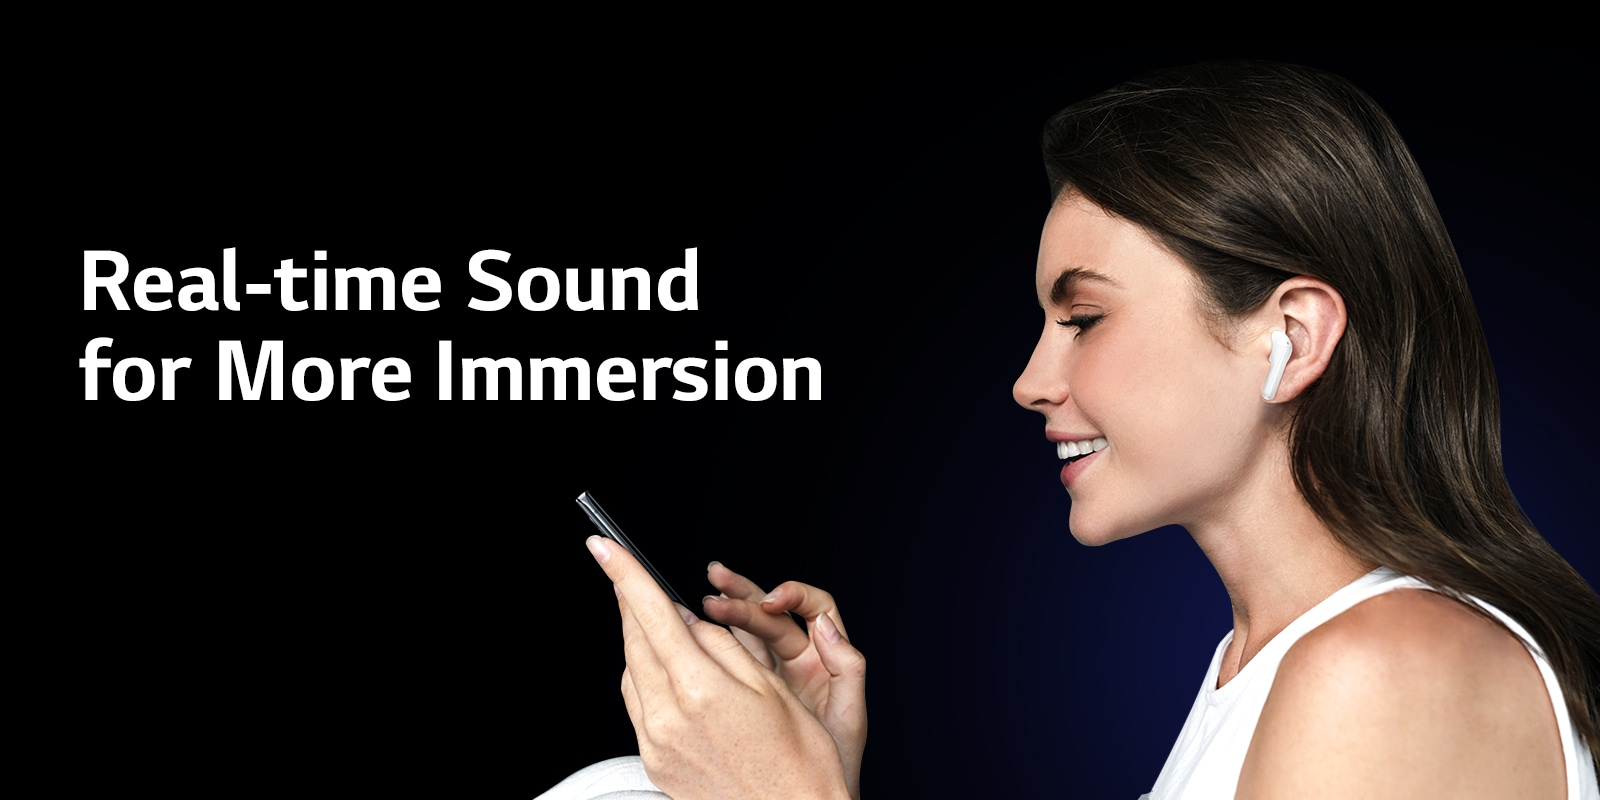 A woman is using phone and at the same time listening through TONE Free.